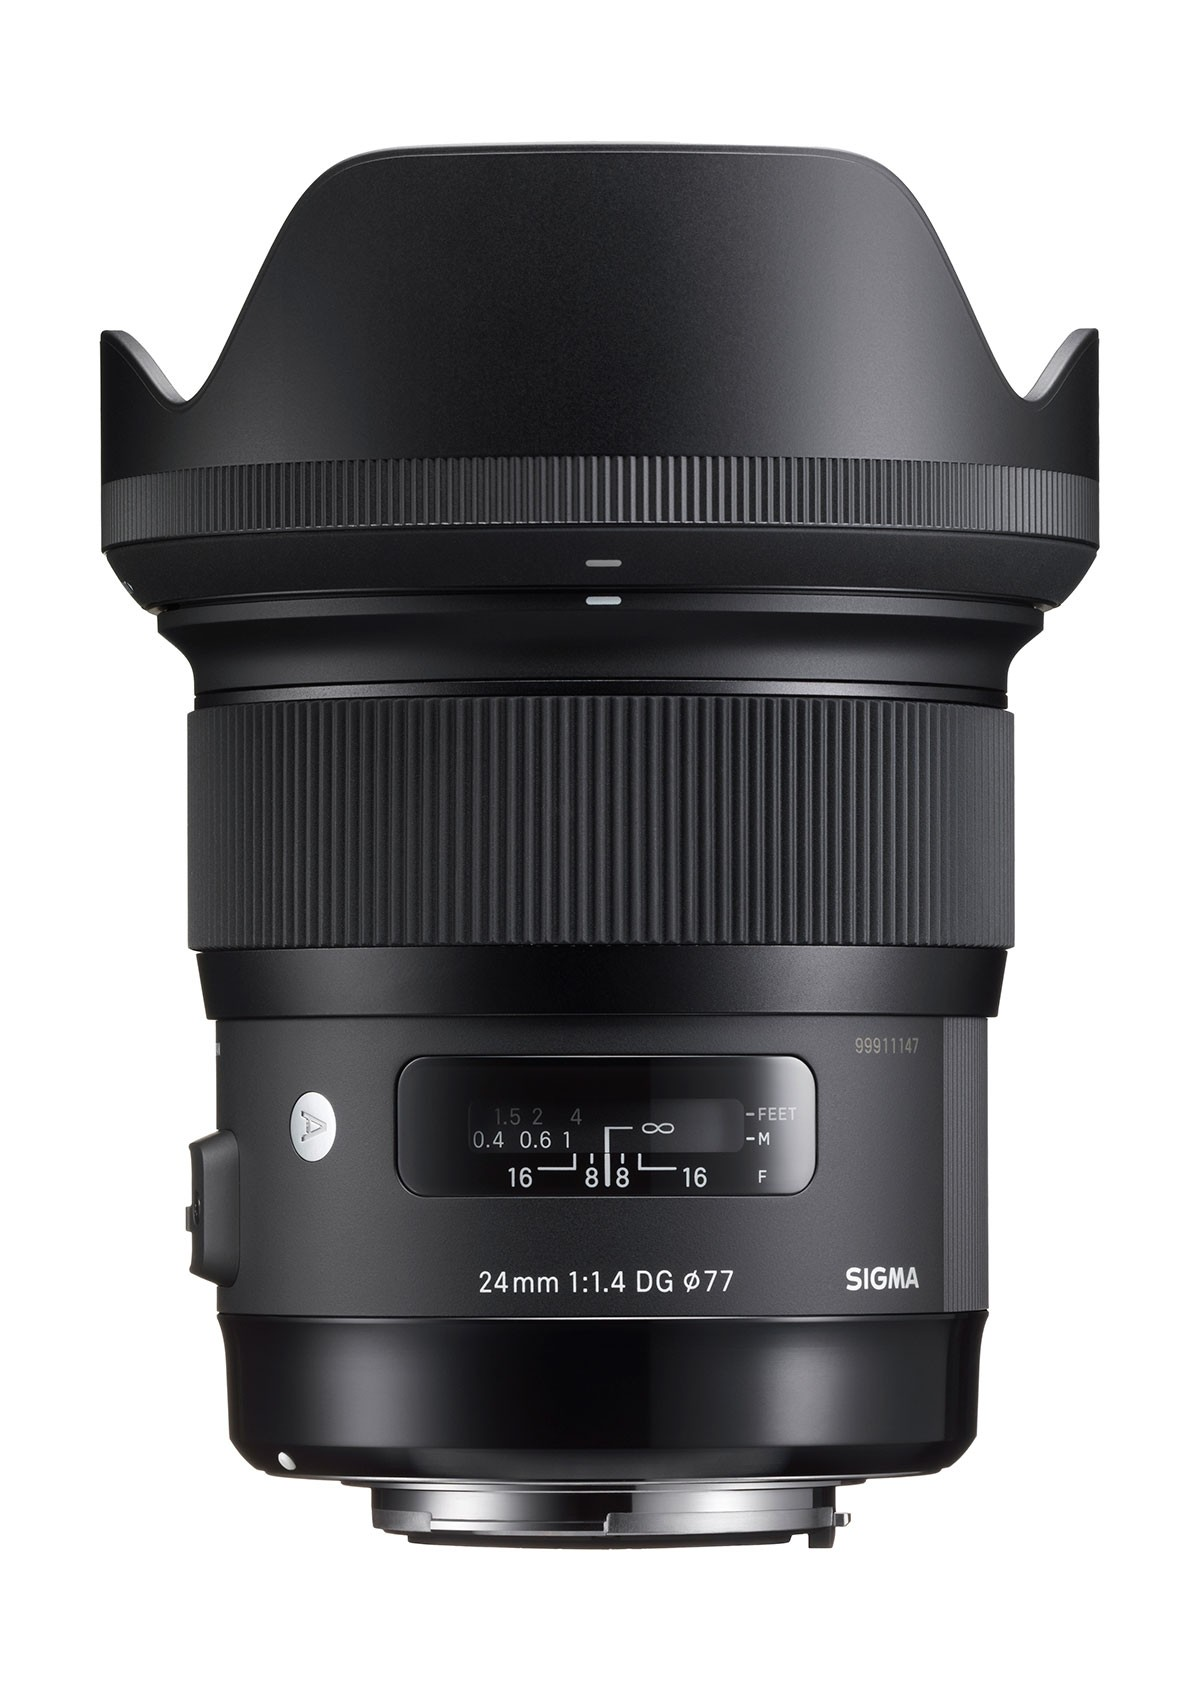 Sigma 24mm f/1.4 DG HSM Art Lens - for Nikon F Mount